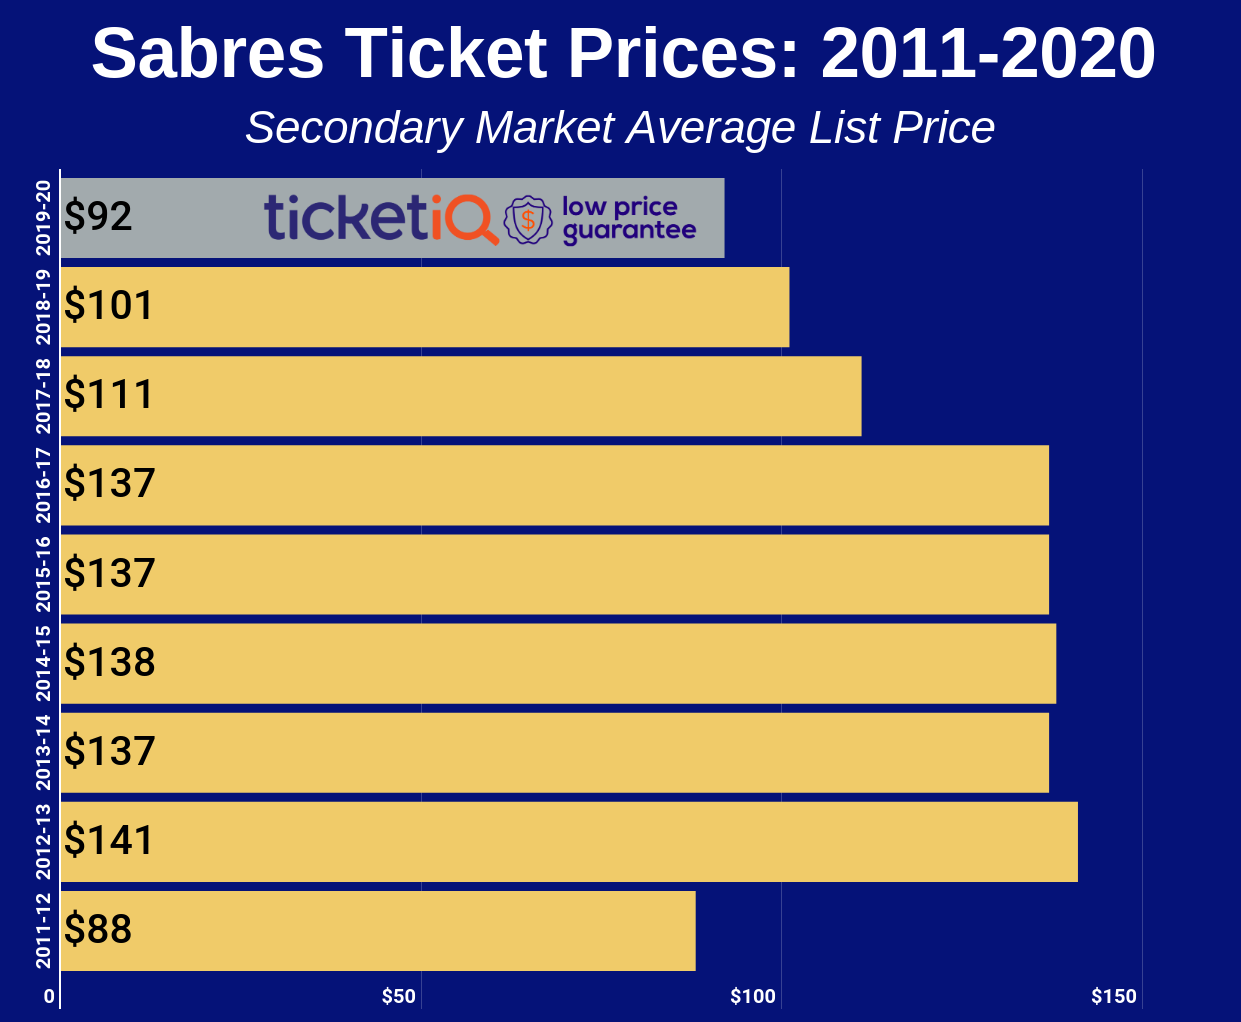 Sabres Ticket Prices